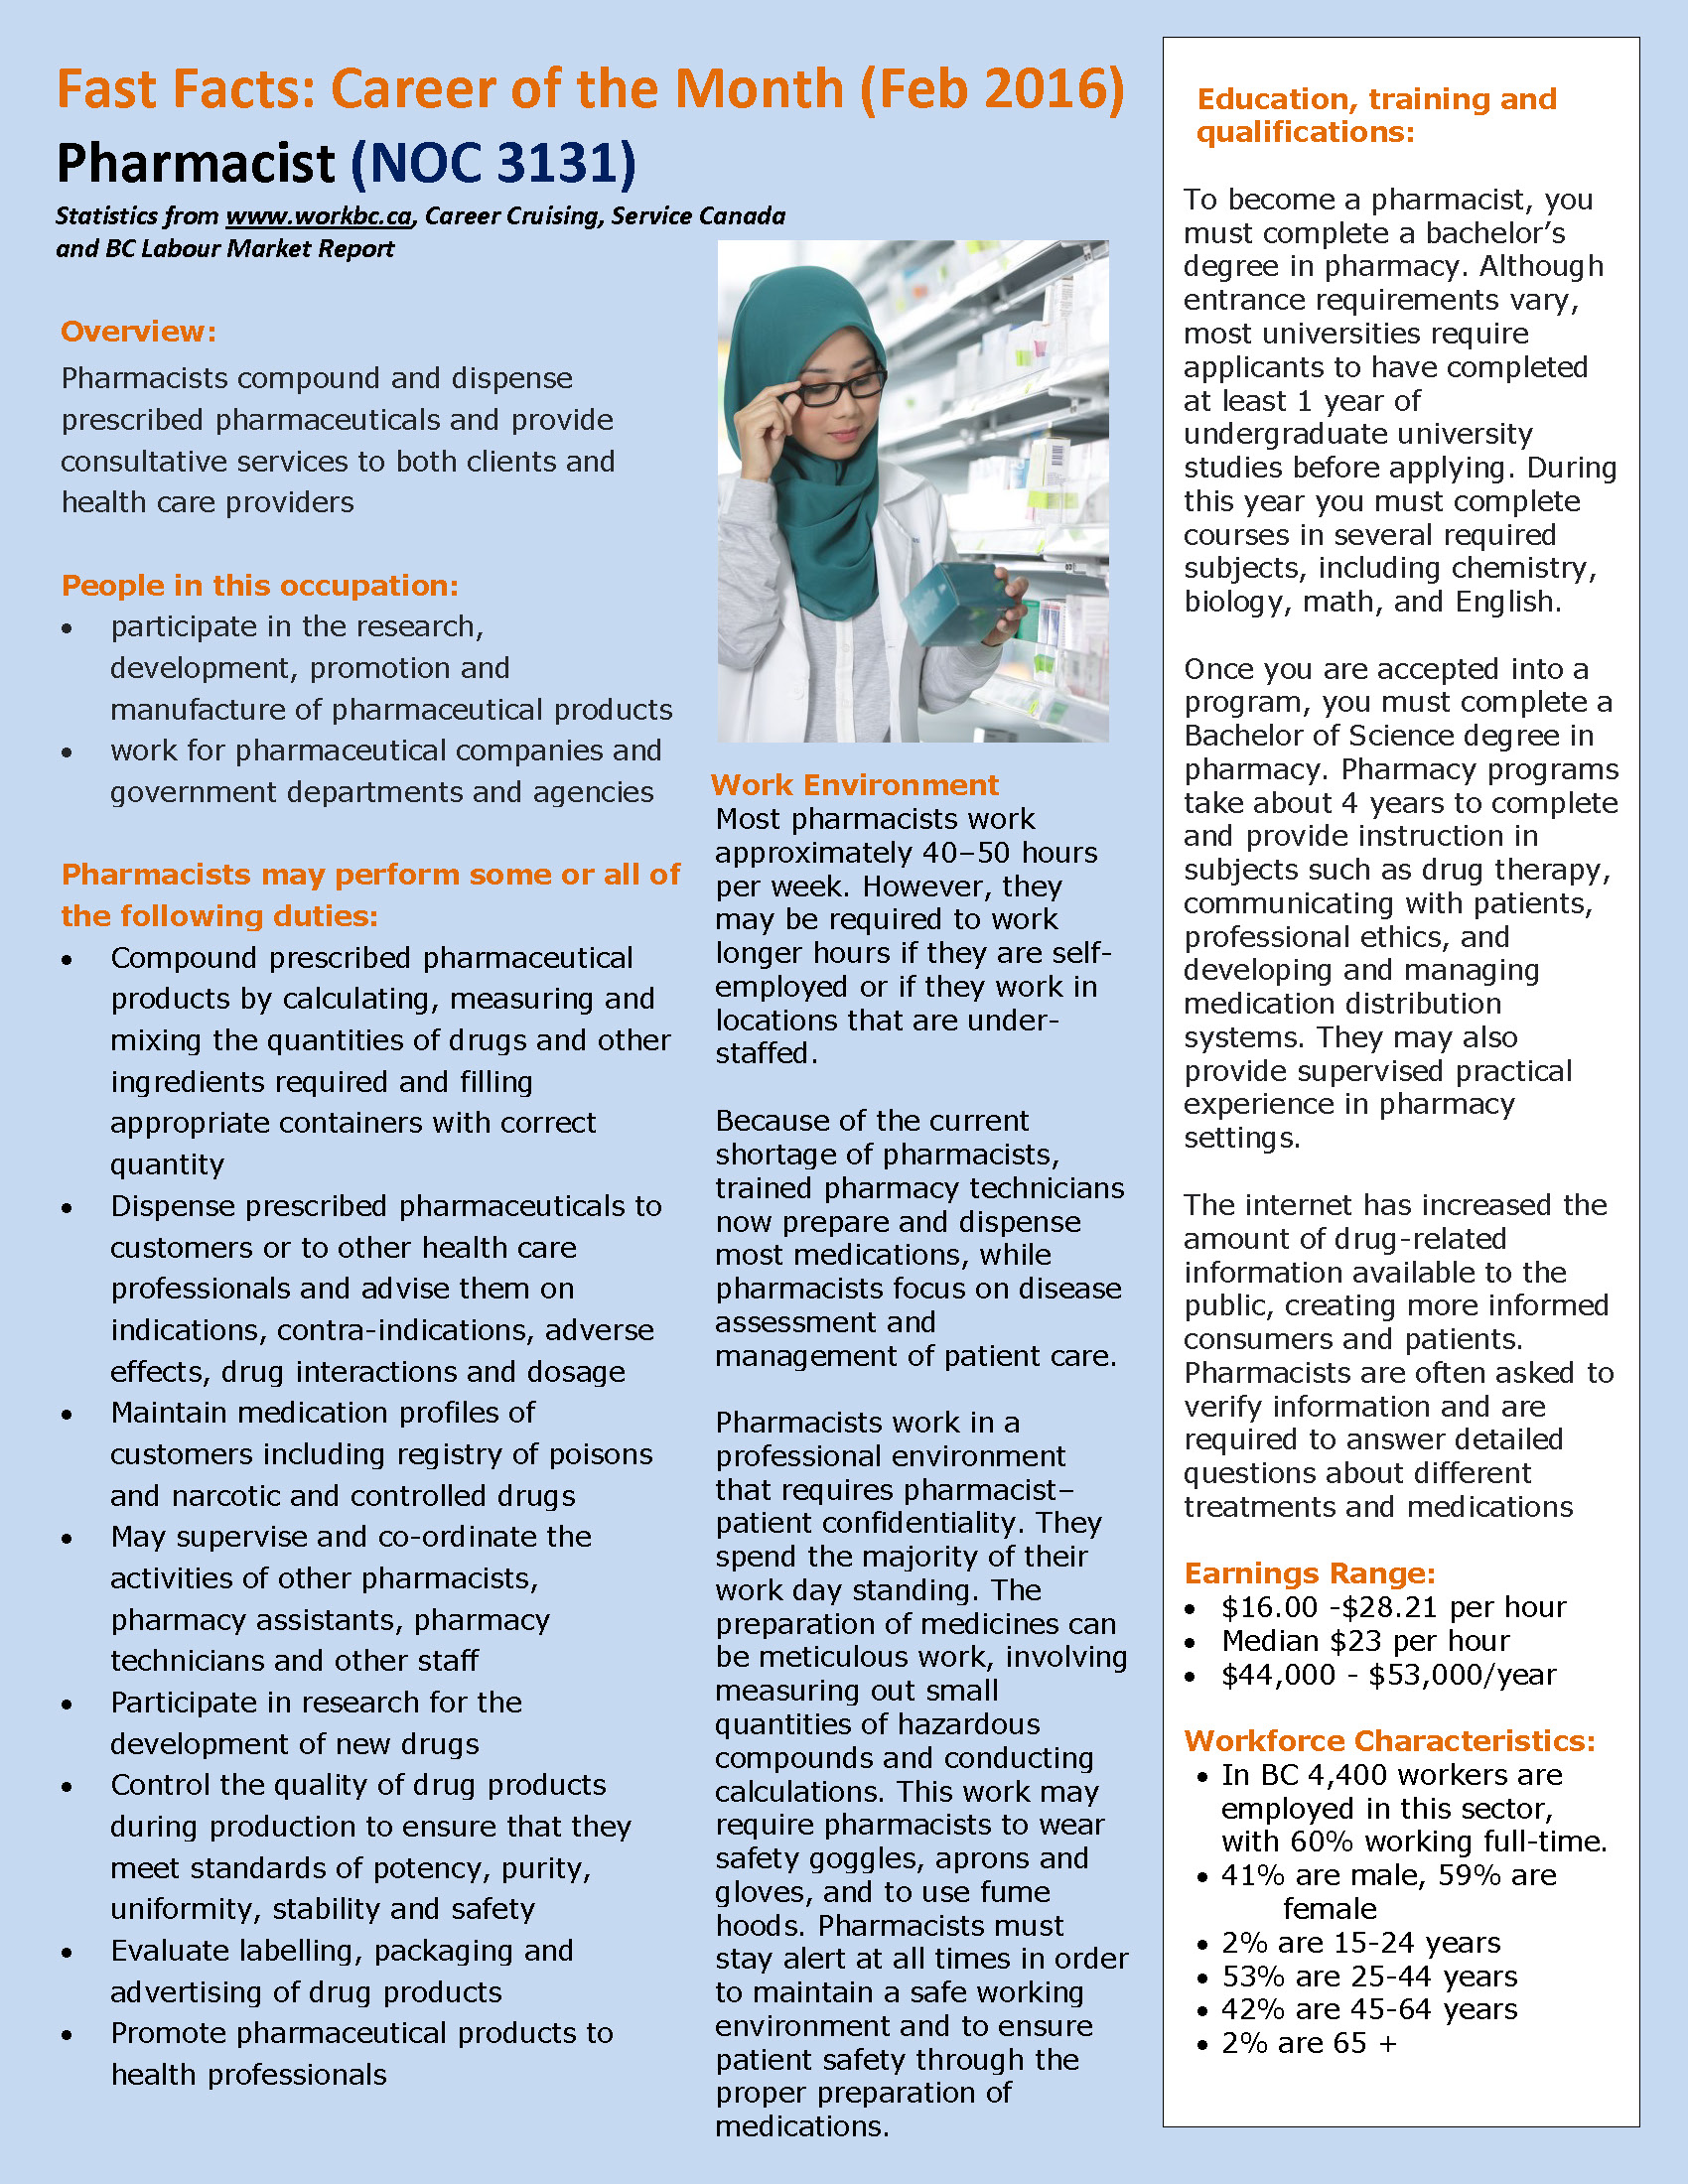 Career Of The Month Fast Facts_Feb2016 Pharmacist_Page_1